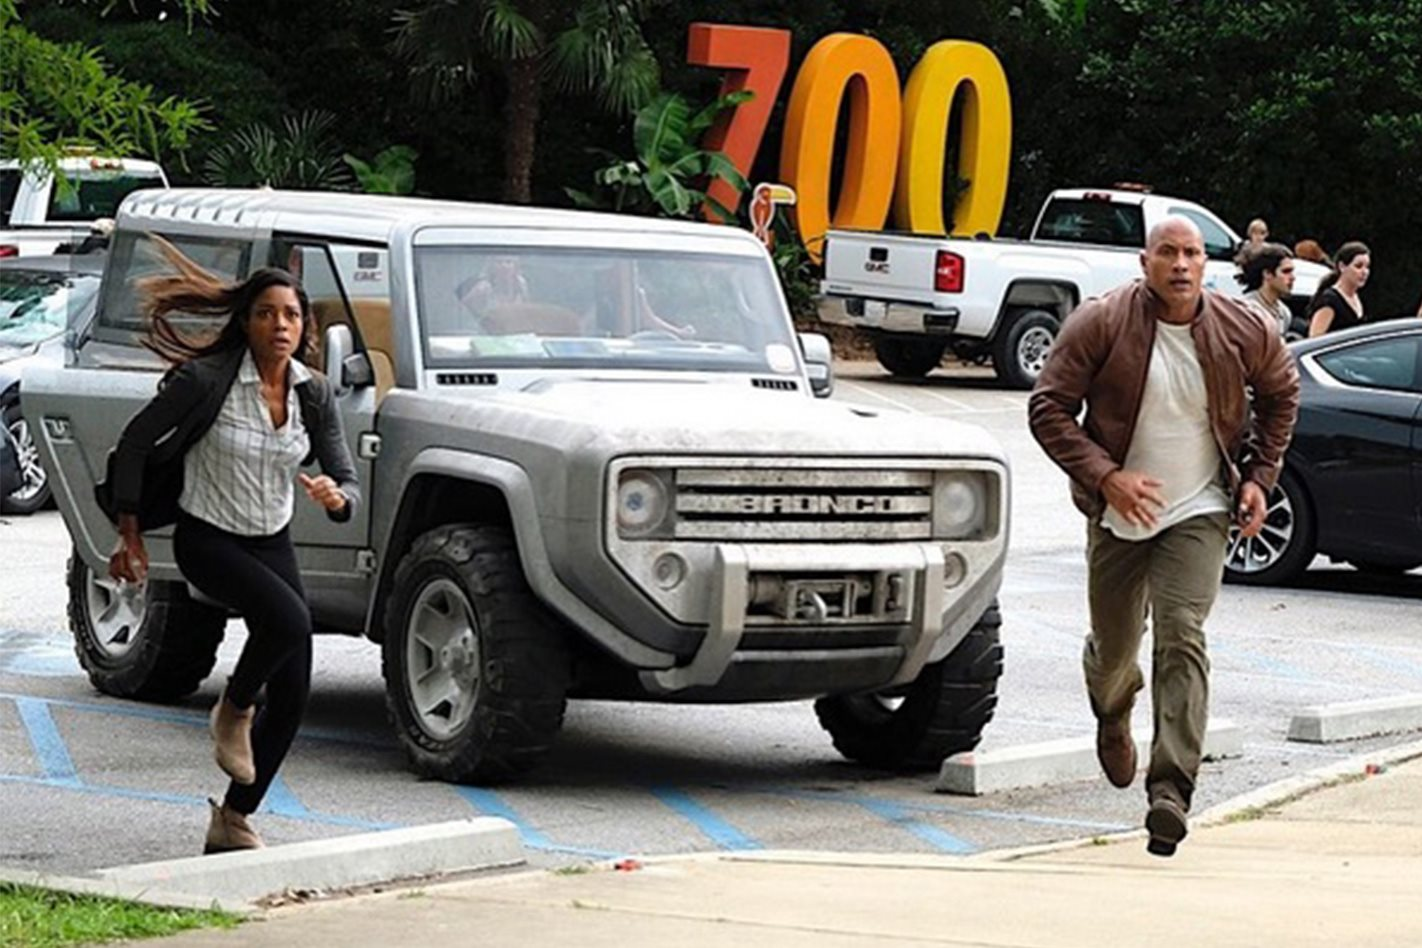 2004 Ford Bronco Concept in new movie